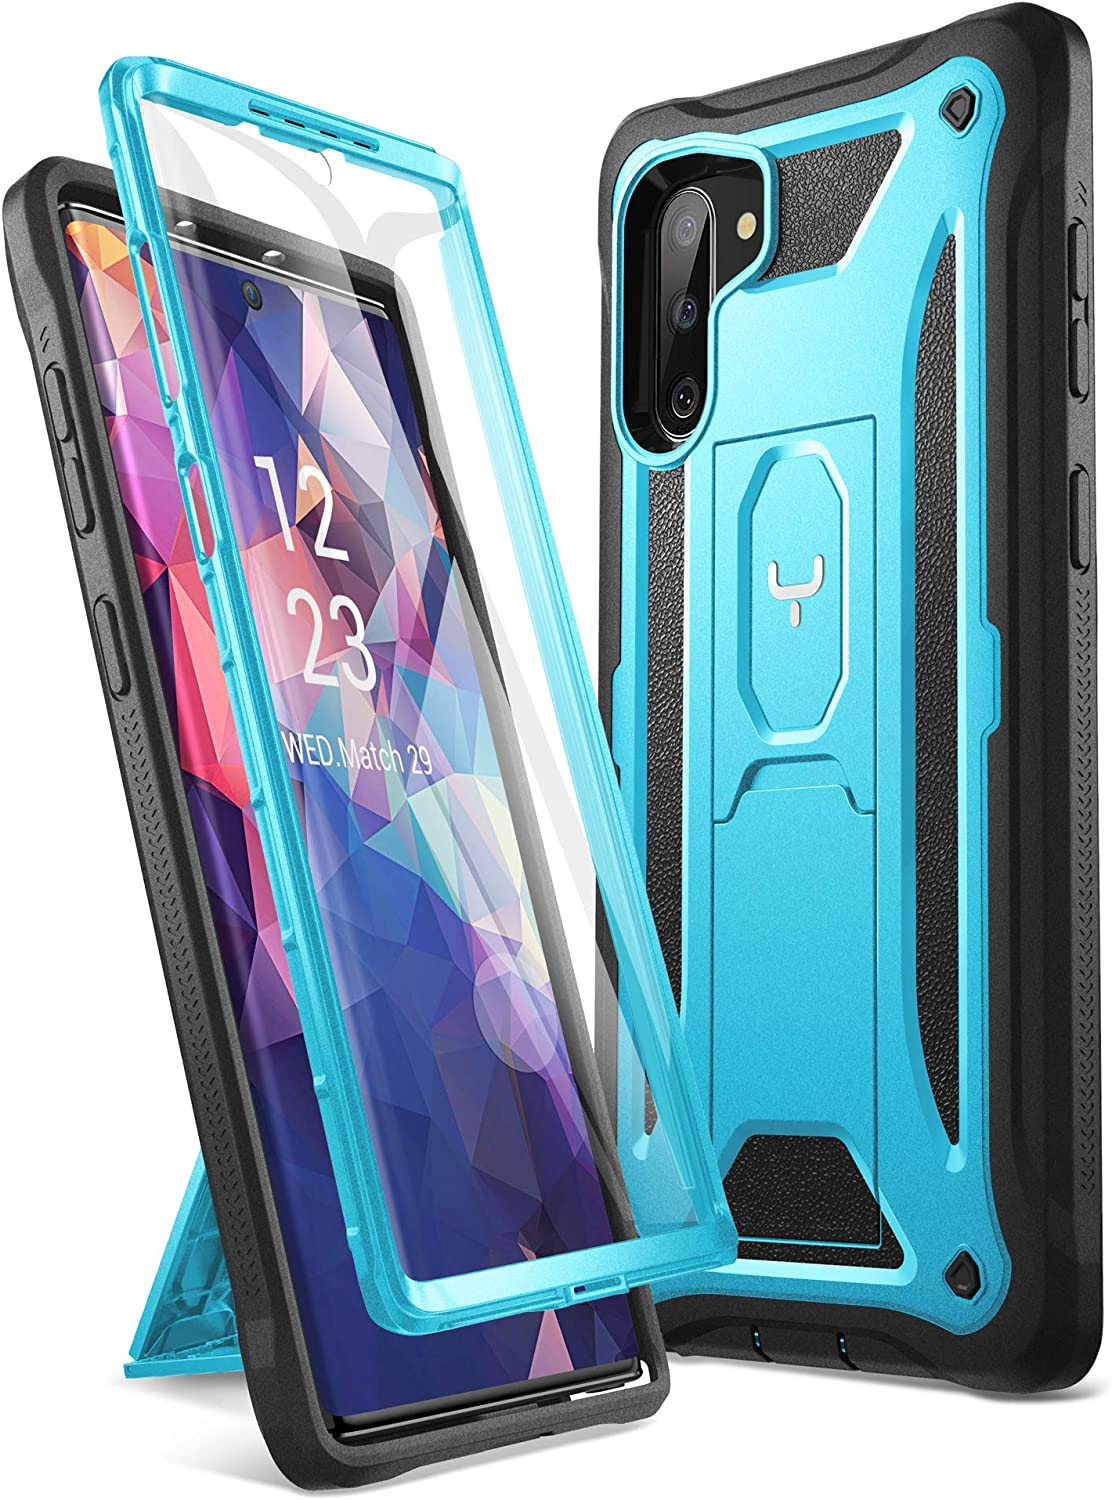 YOUMAKER Case for Galaxy Note 10, Built-in Screen Protector Work with Fingerprint ID Kickstand Full Body Heavy Duty Protection Shockproof Cover for Samsung Galaxy Note 10 6.3 Inch (2019) - Blue/Black